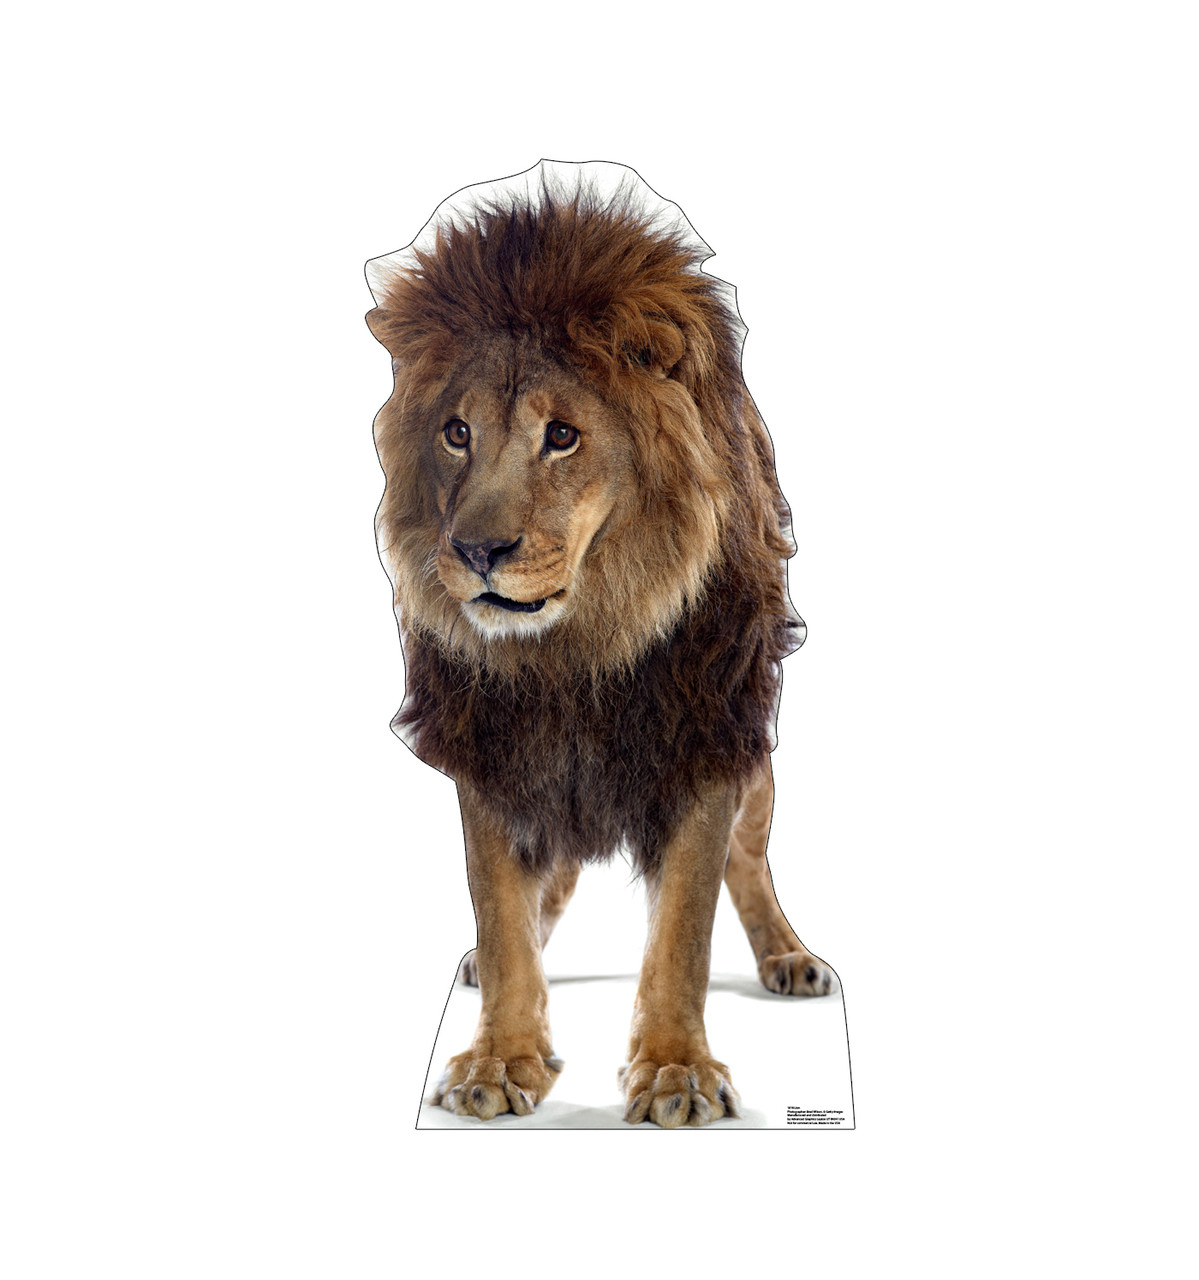 Life-size cardboard standee of a Lion.